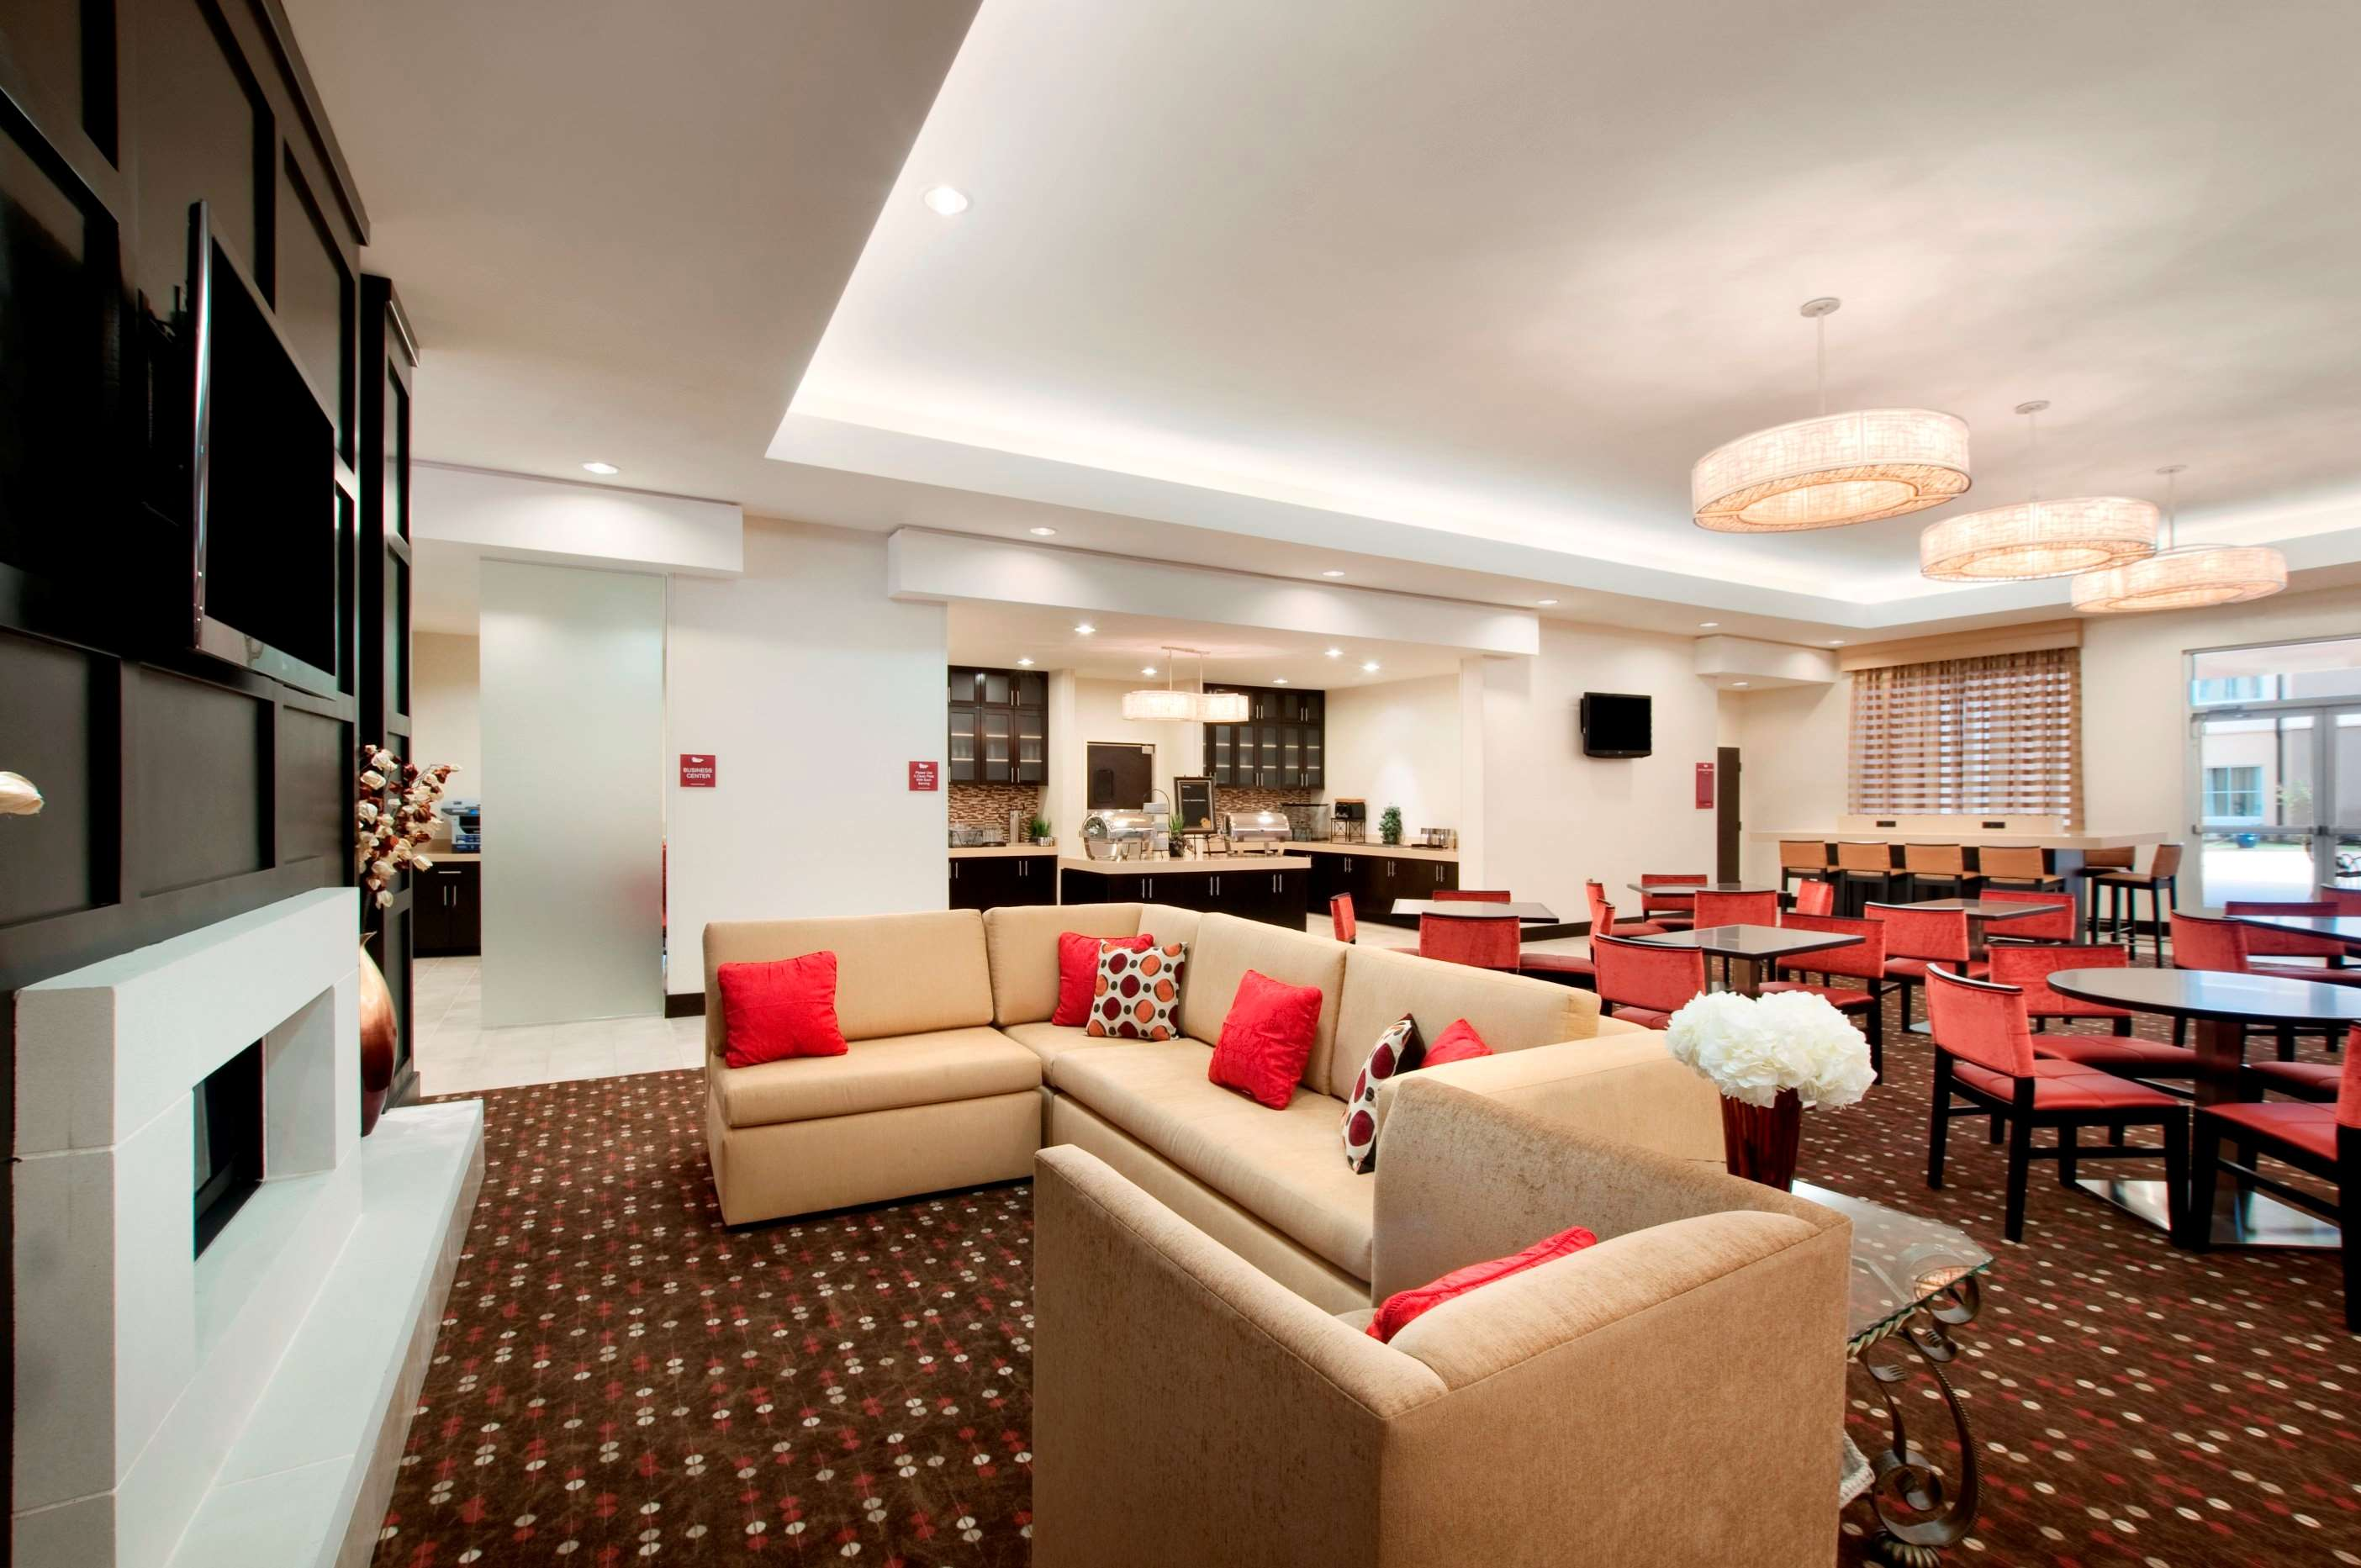 Homewood Suites by Hilton Fort Worth West at Cityview, TX image 4